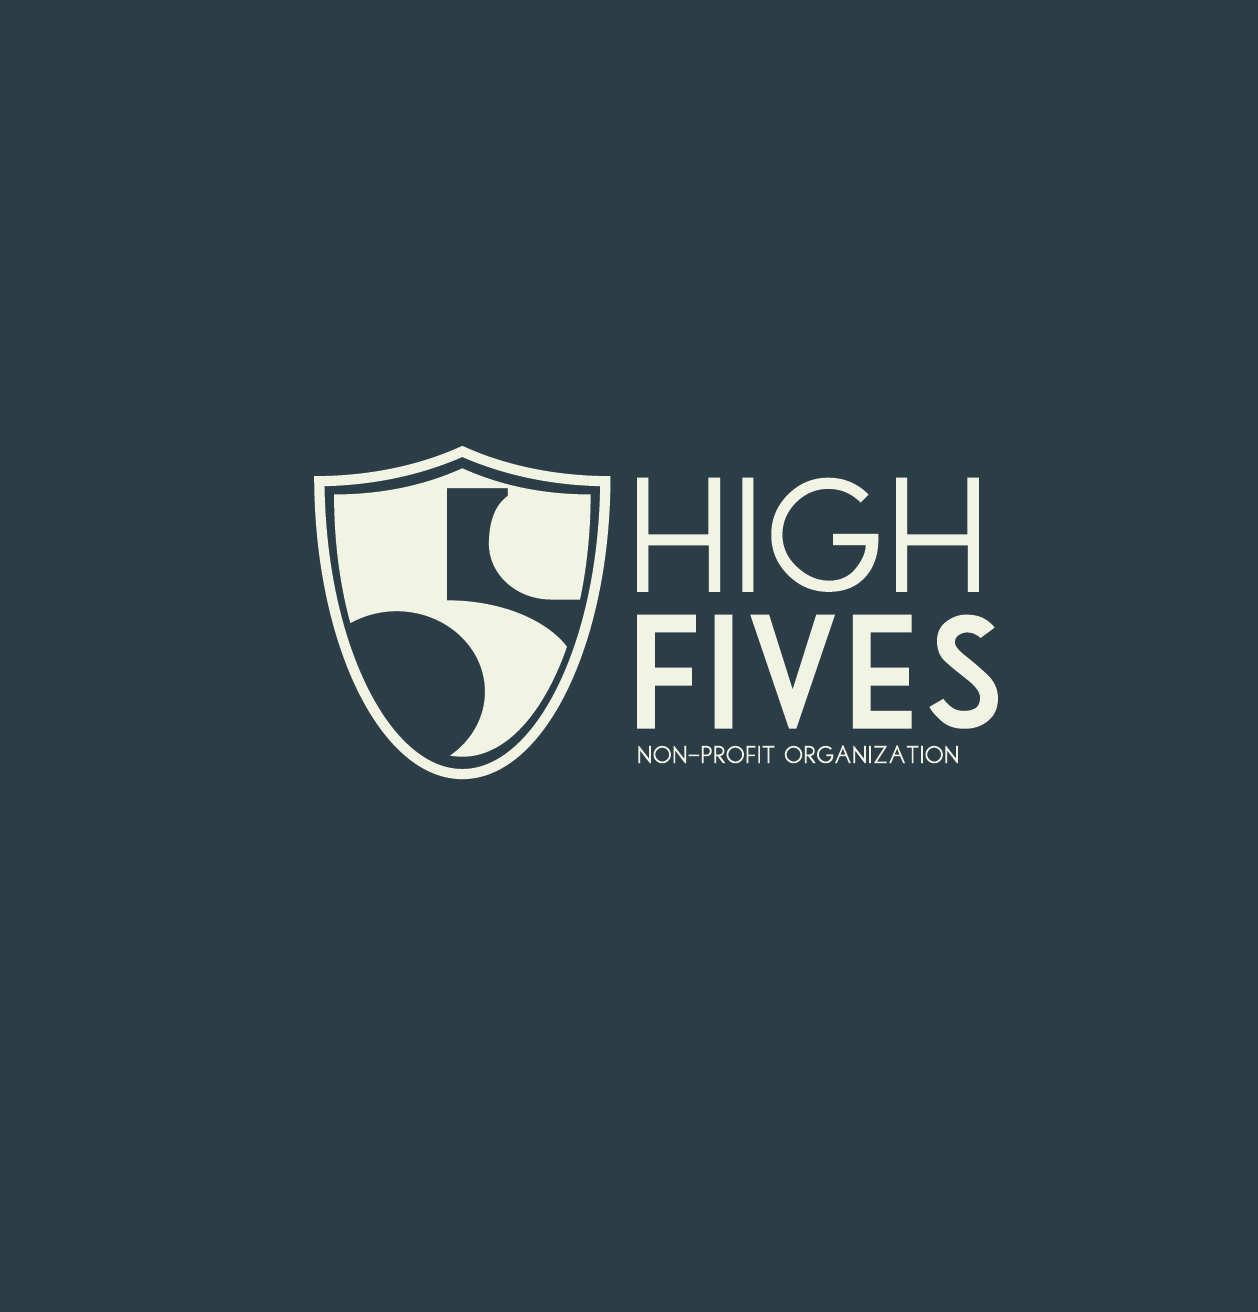 High fives.png